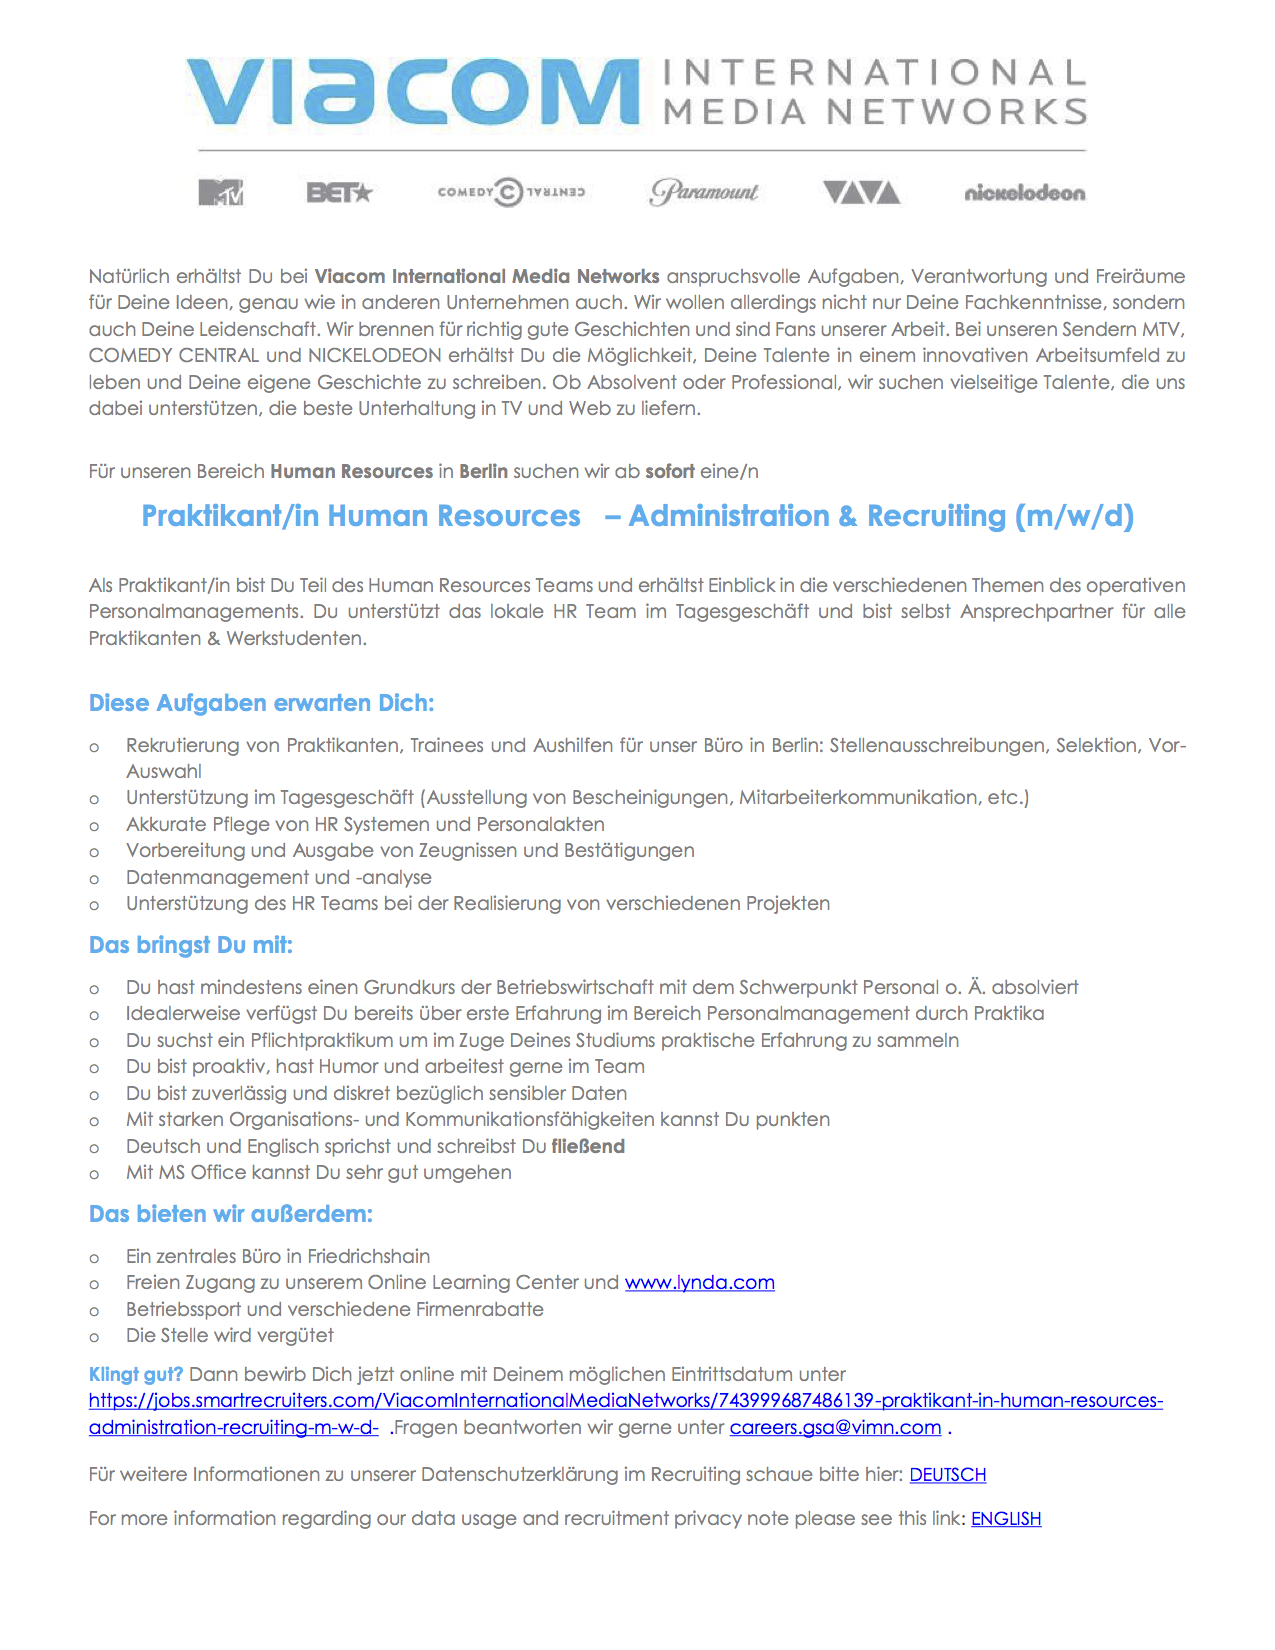 Praktikant/in Human Resources - Administration & Recruiting (m/w/d)